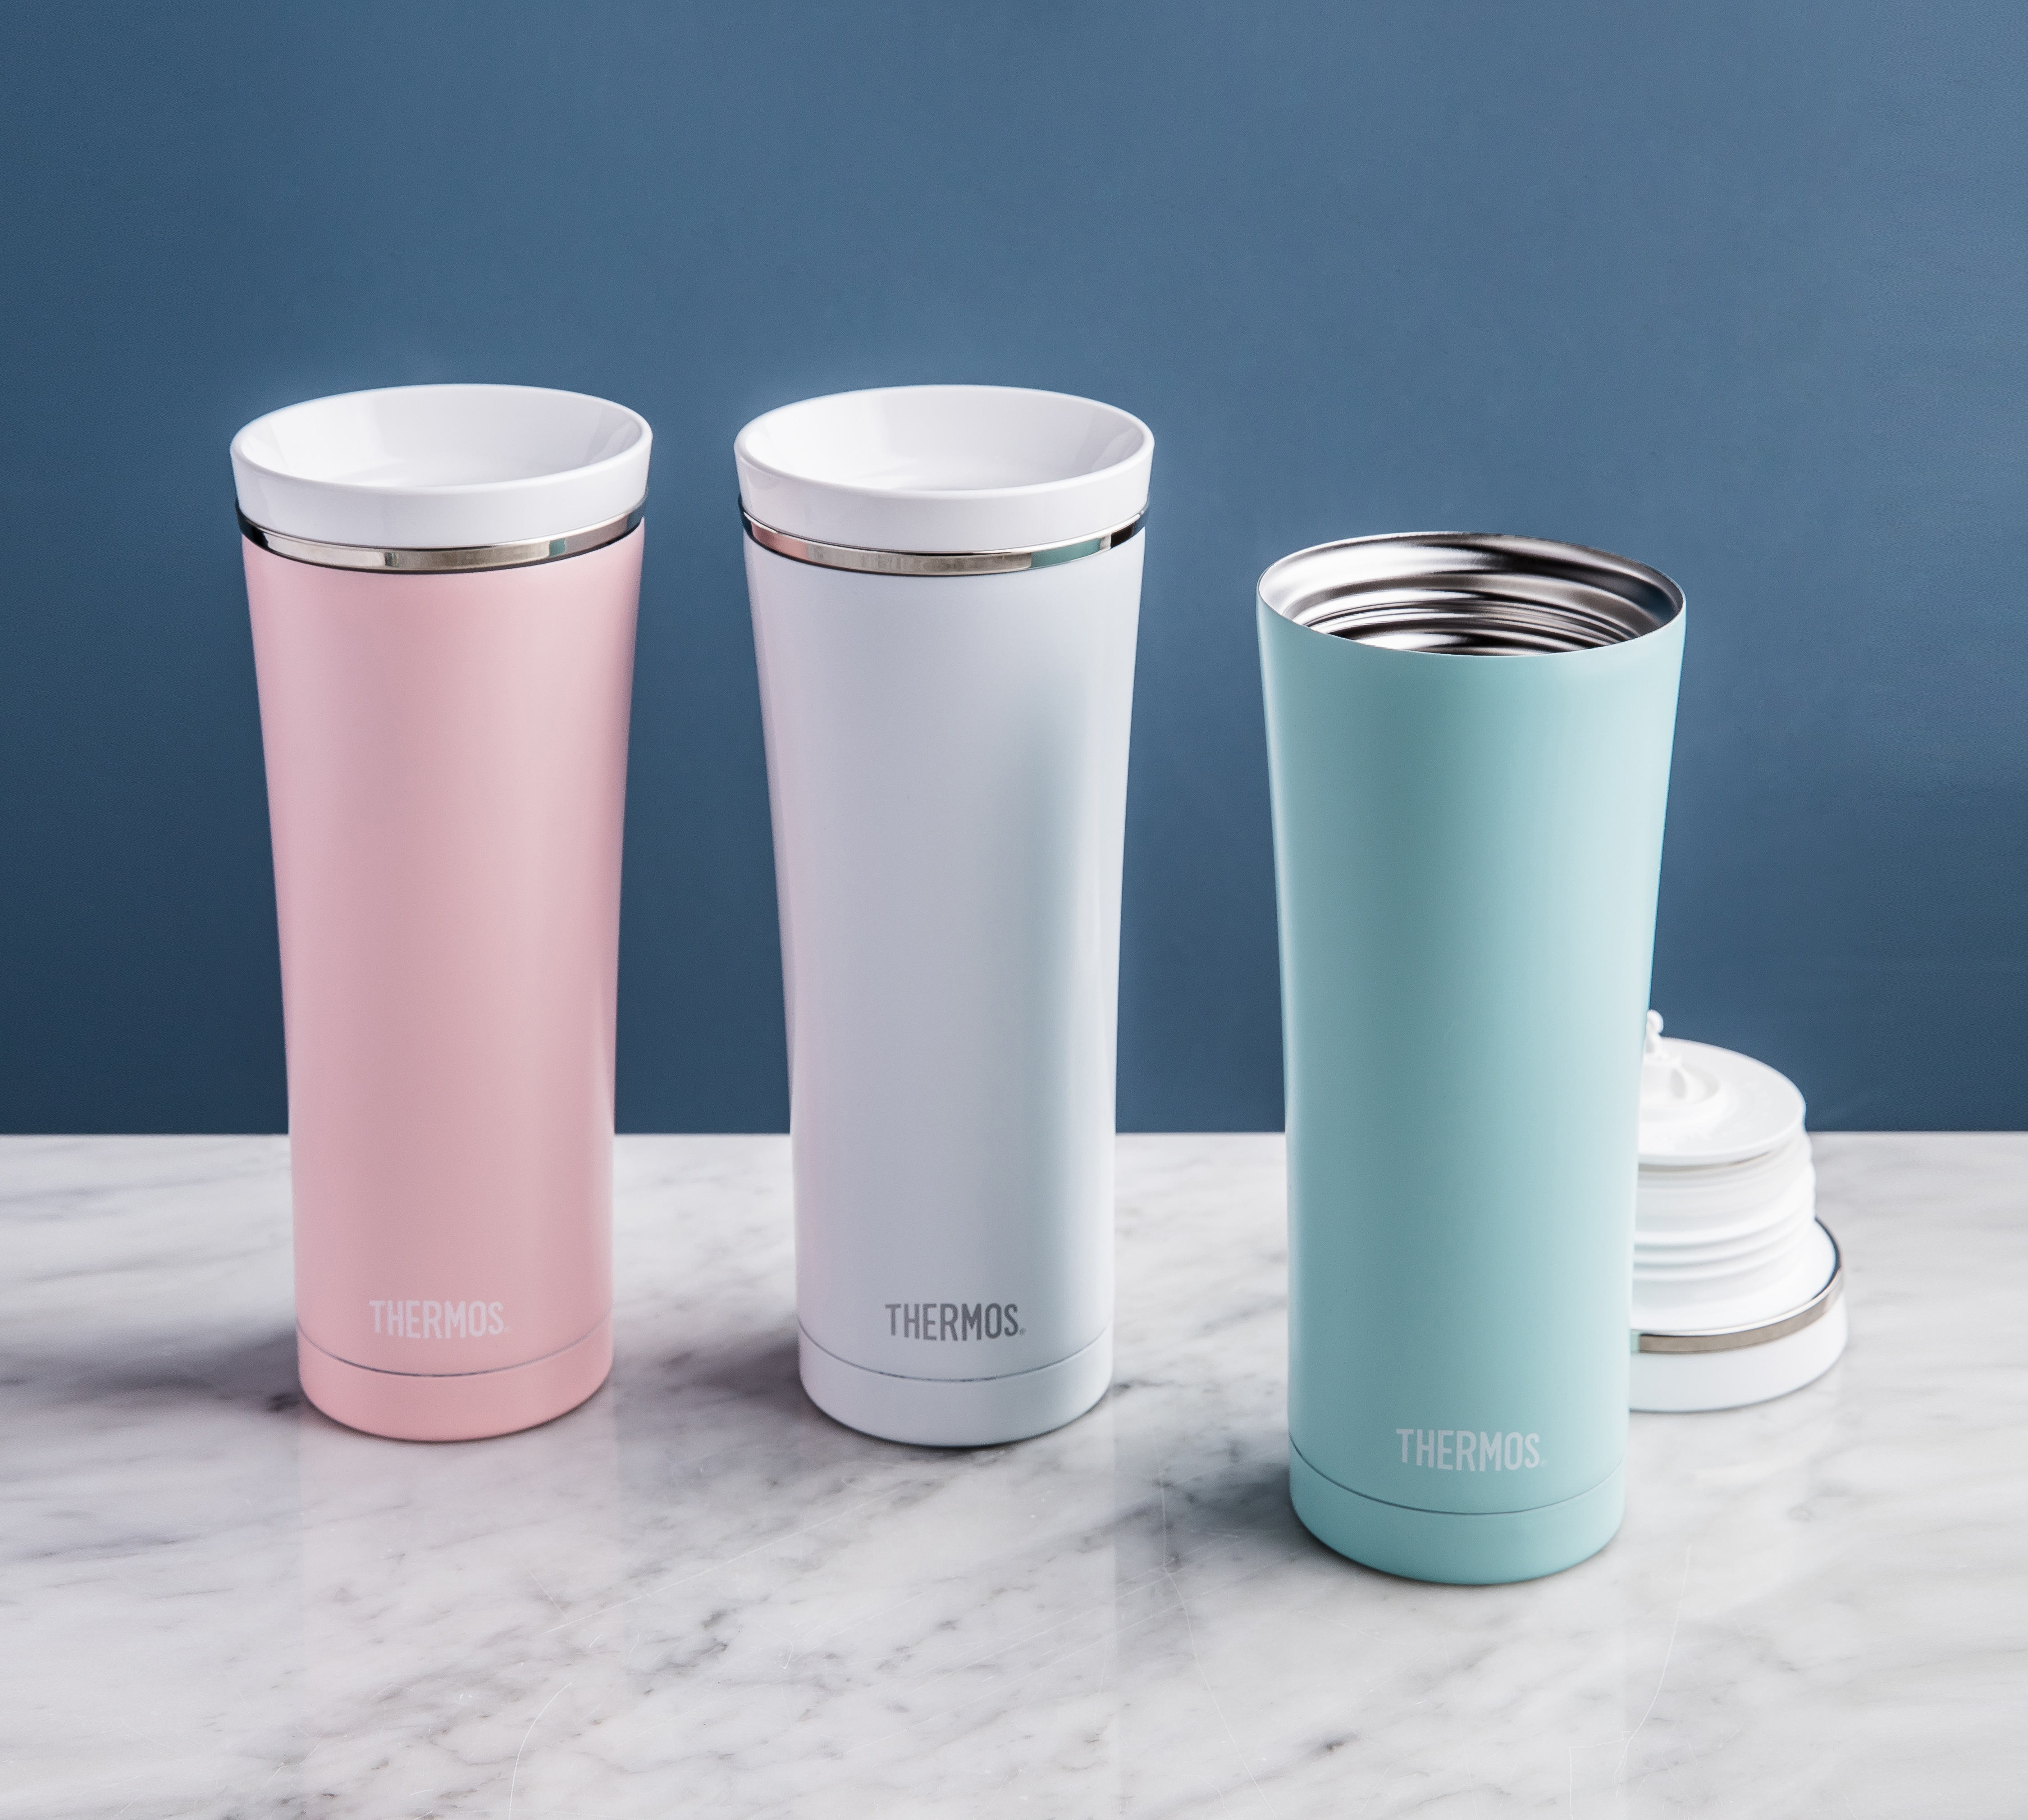 one matte pink, one matte white, and one matte turquoise no handle thermos